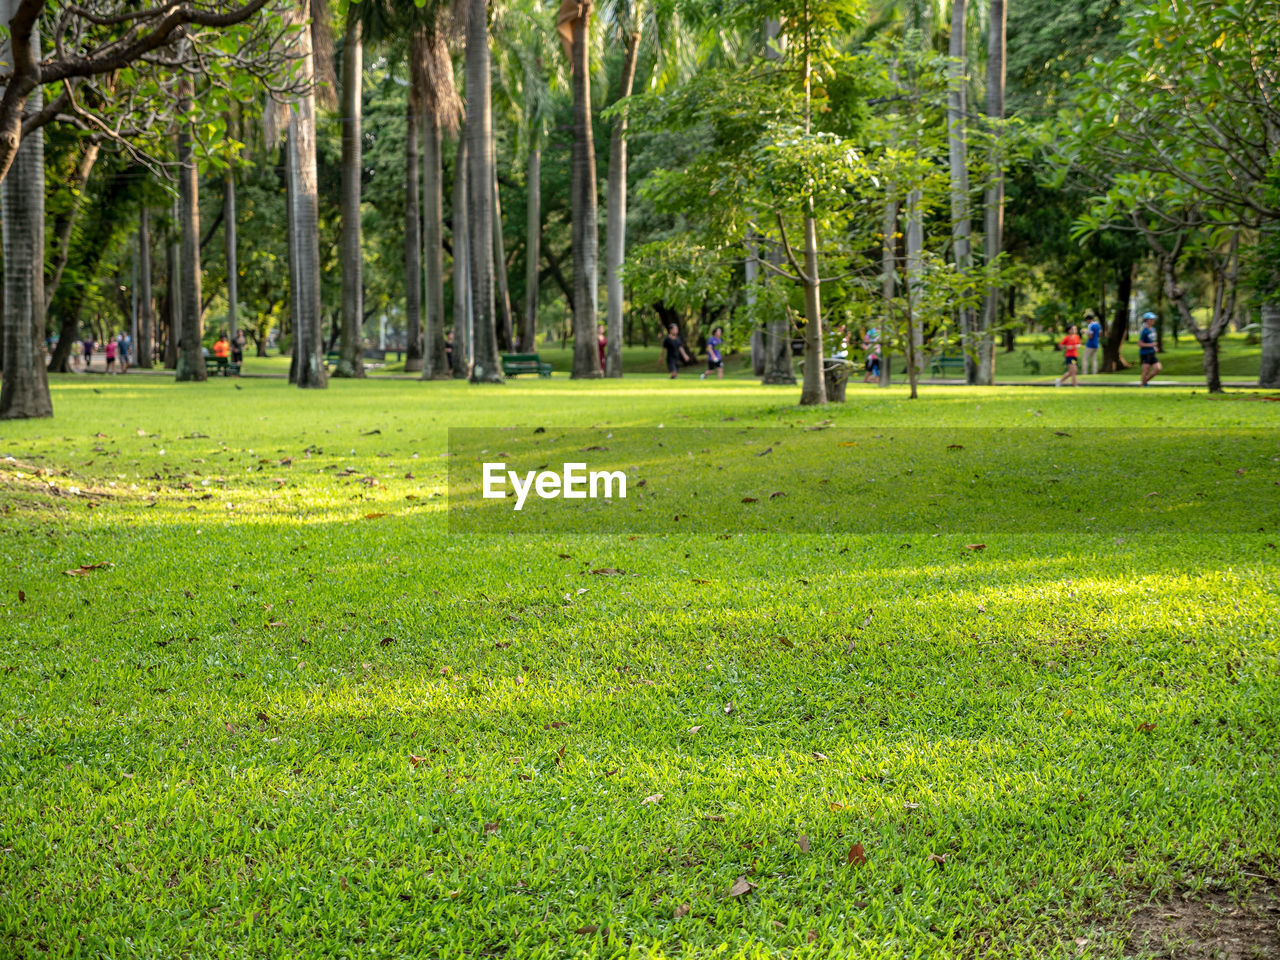 tree, plant, grass, park, green color, nature, park - man made space, day, land, incidental people, growth, people, group of people, outdoors, crowd, environment, lush foliage, beauty in nature, foliage, tranquility